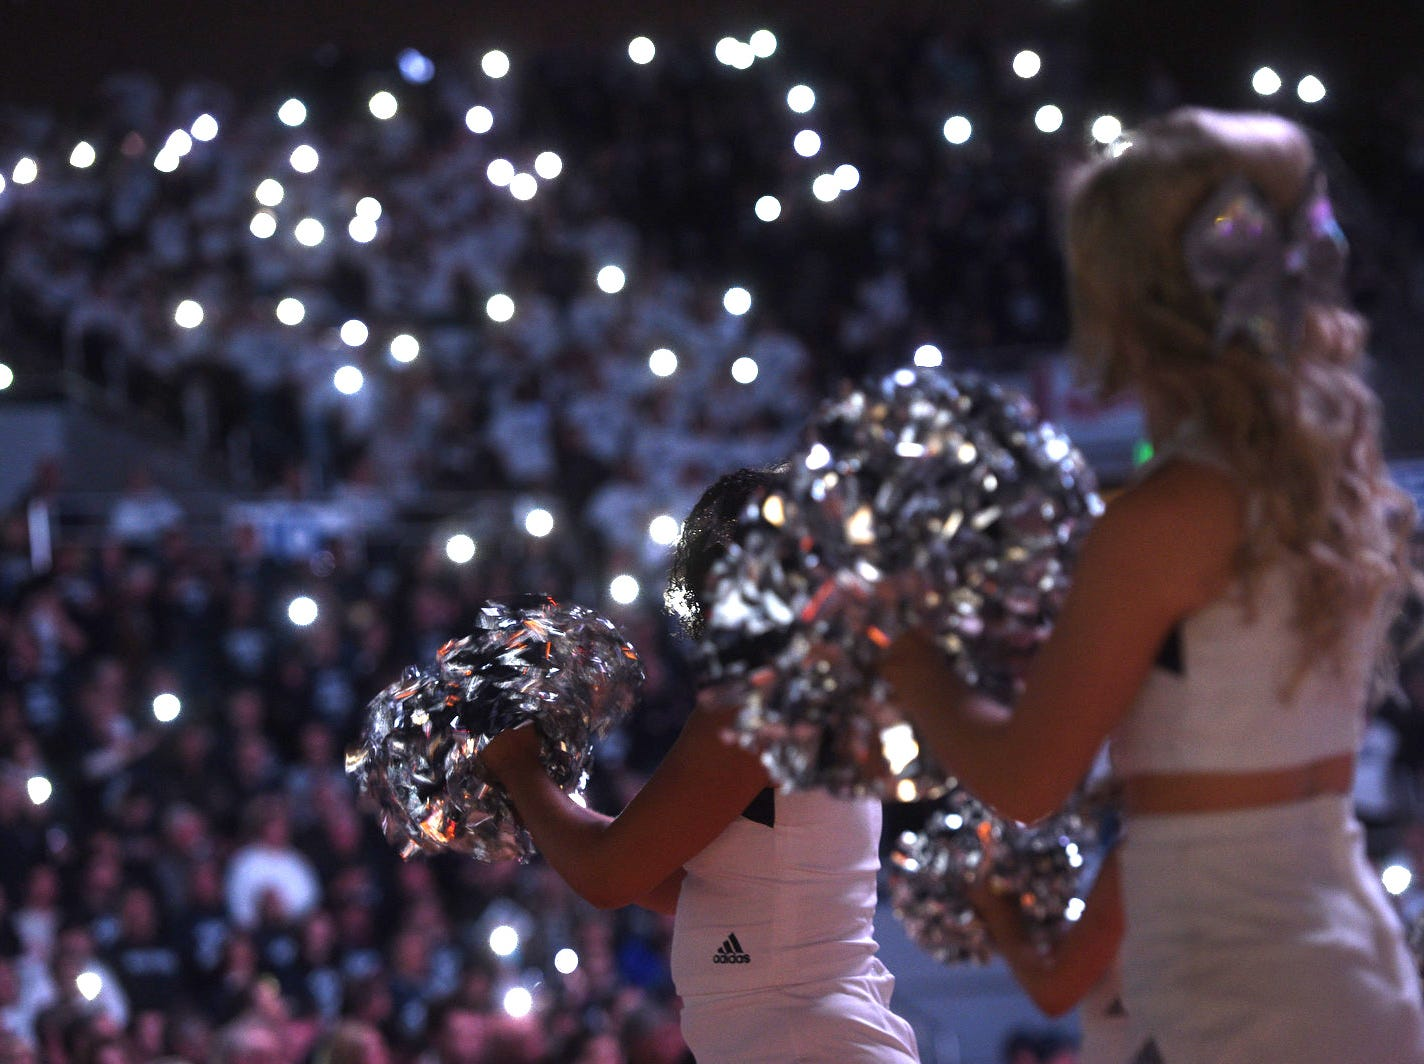 Nevada takes on UNLV during their basketball game at Lawlor Events Center in Reno on Feb. 27, 2019.